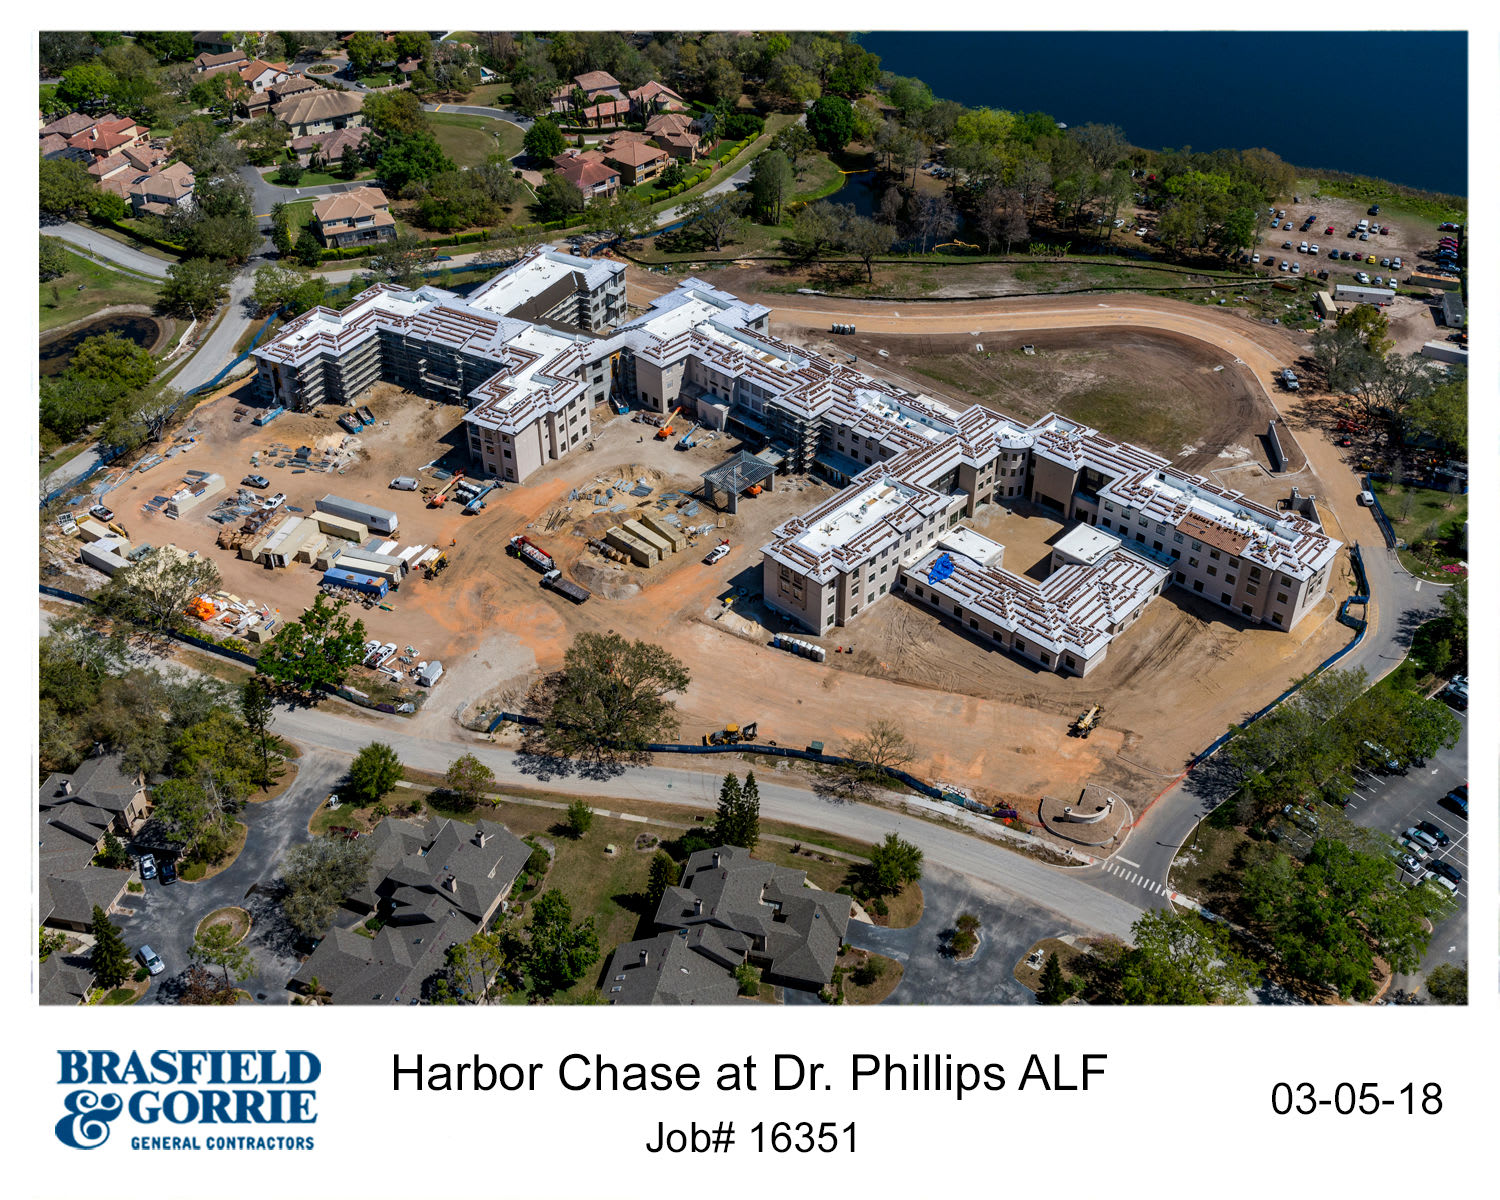 Construction of HarborChase of Dr. Phillips